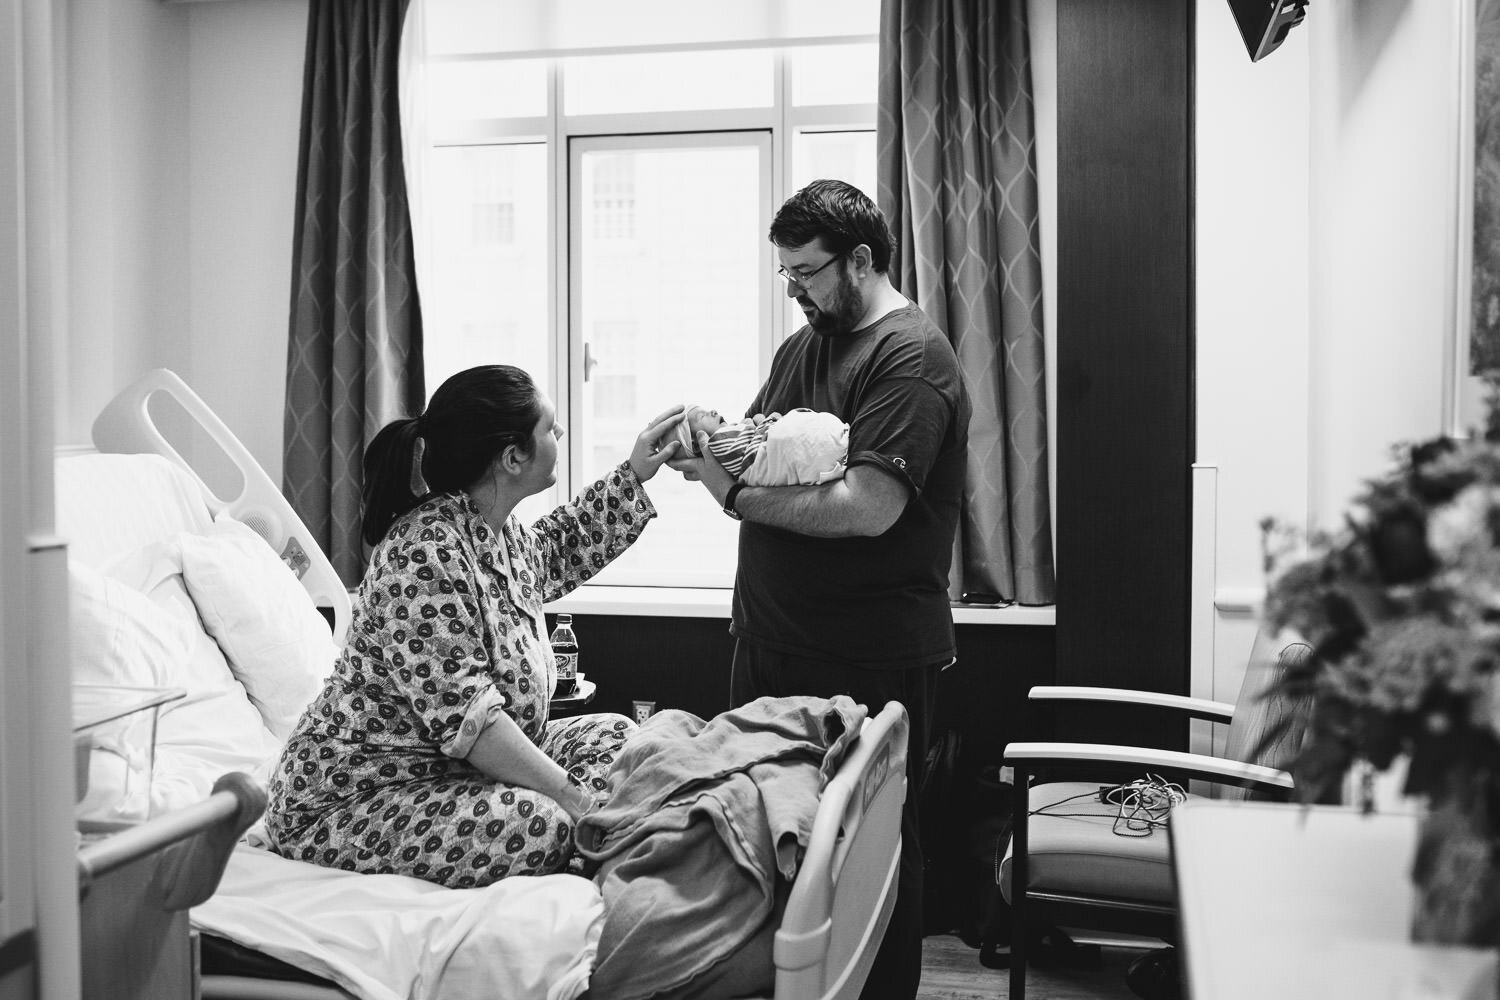 A couple and their newborn baby in their hospital room.